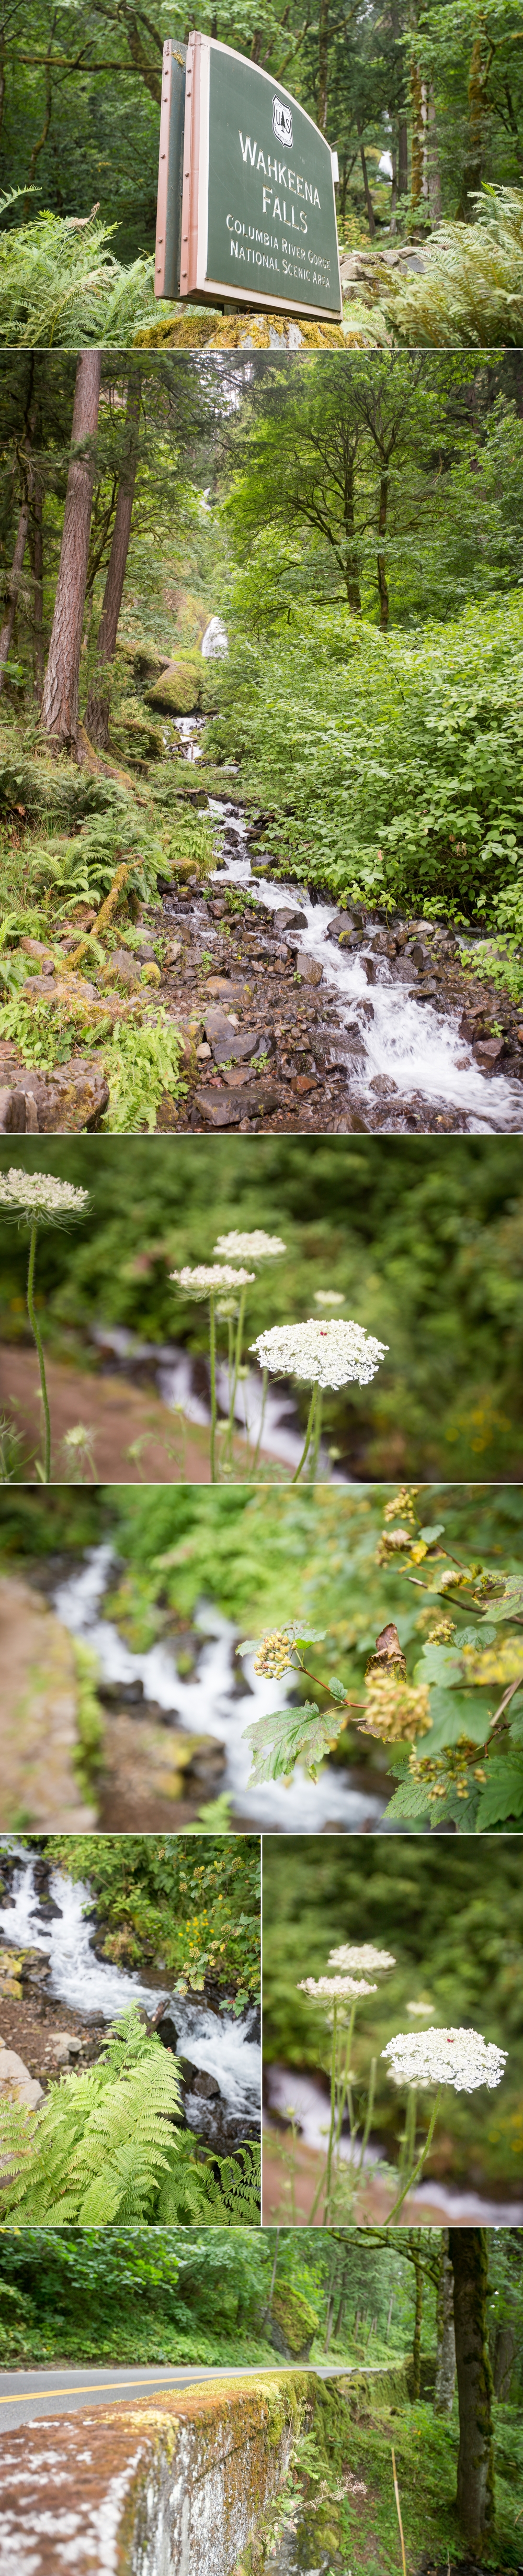 Columbia River Gorge | Portland, Oregon | Shaina Lee Photography | Fairfield County CT, NYC + Destination Wedding + Engagement Photographer